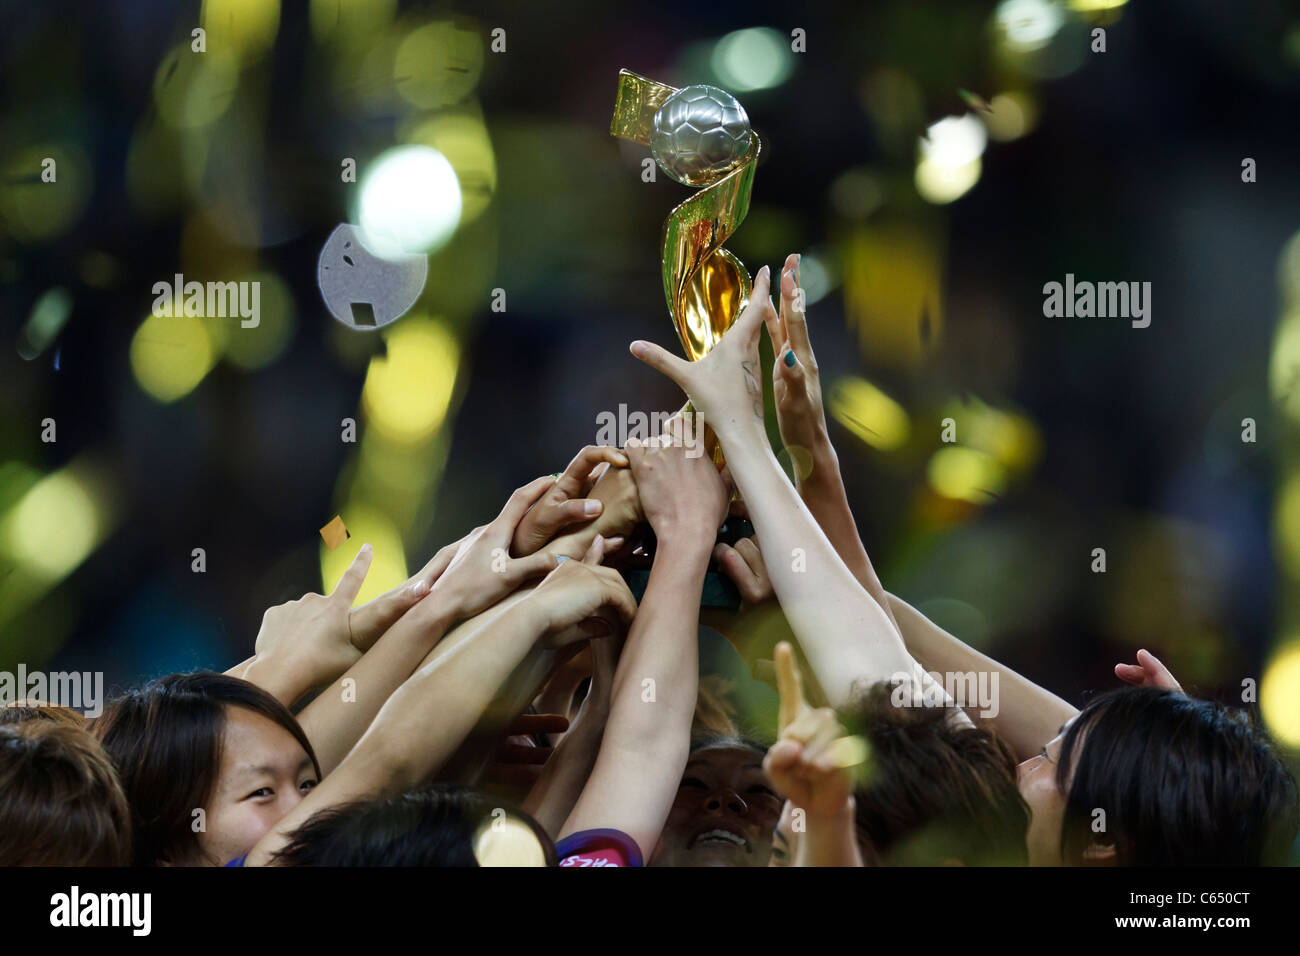 Japanese players hoist the World Cup trophy after defeating the USA to win the FIFA Women's World Cup final - Stock Image